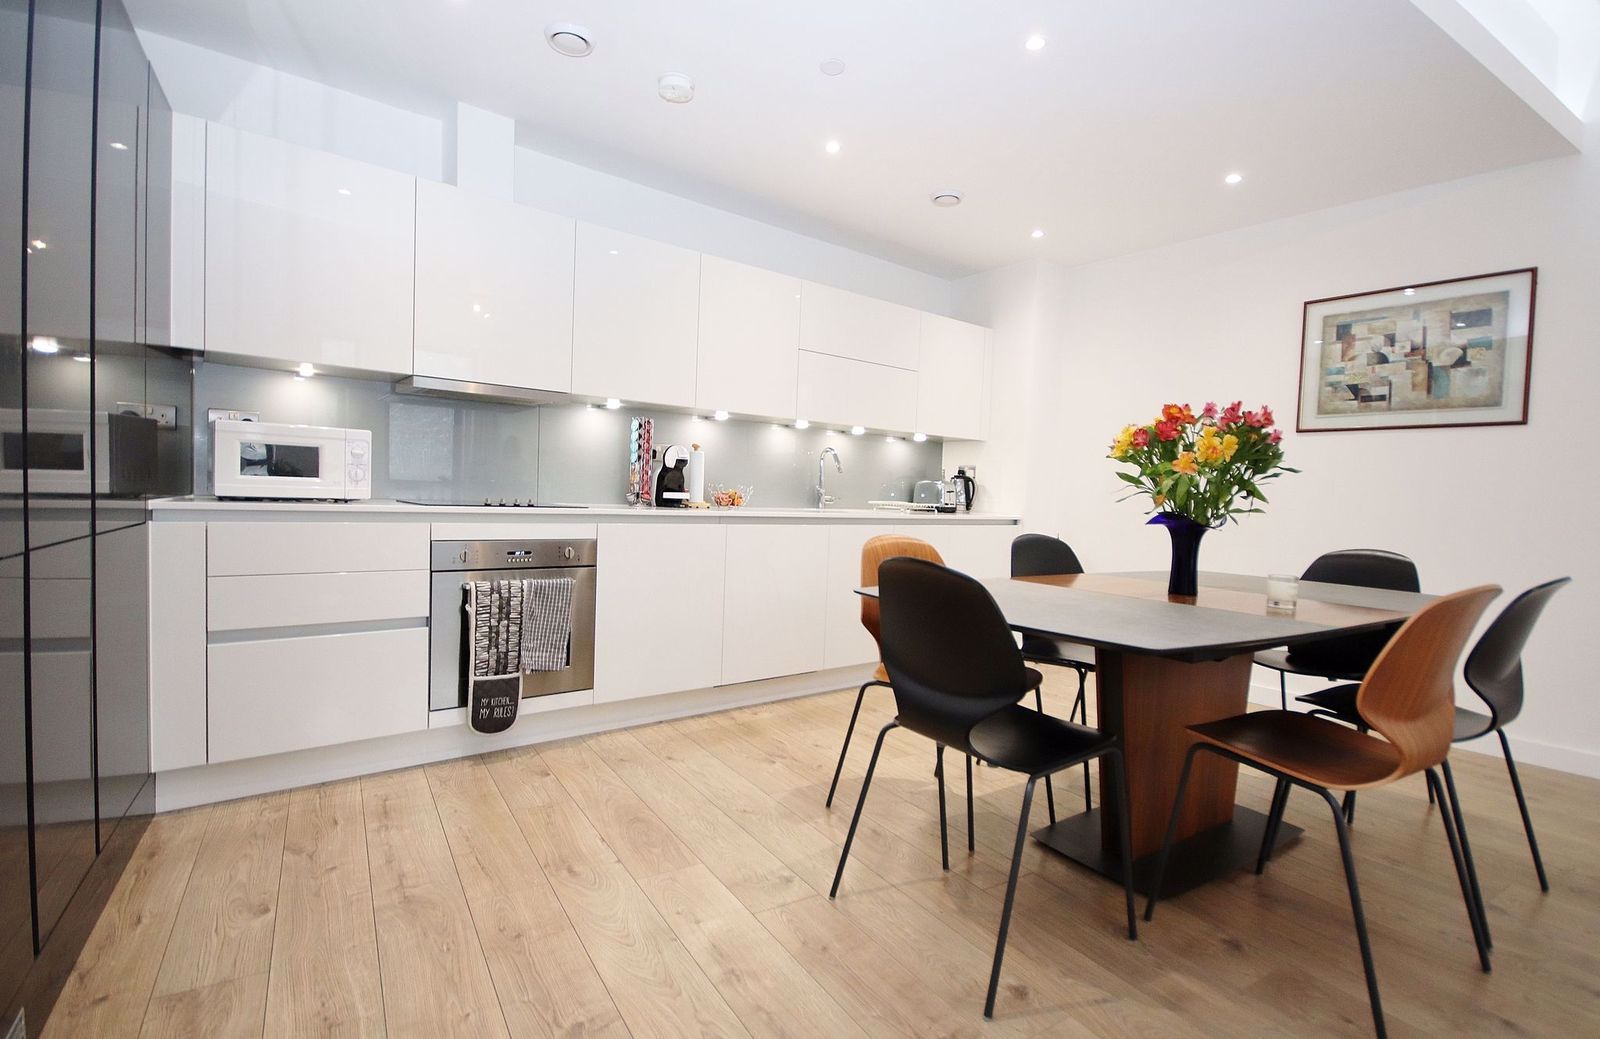 3 bed flat for sale in Williamsburg Plaza, E14